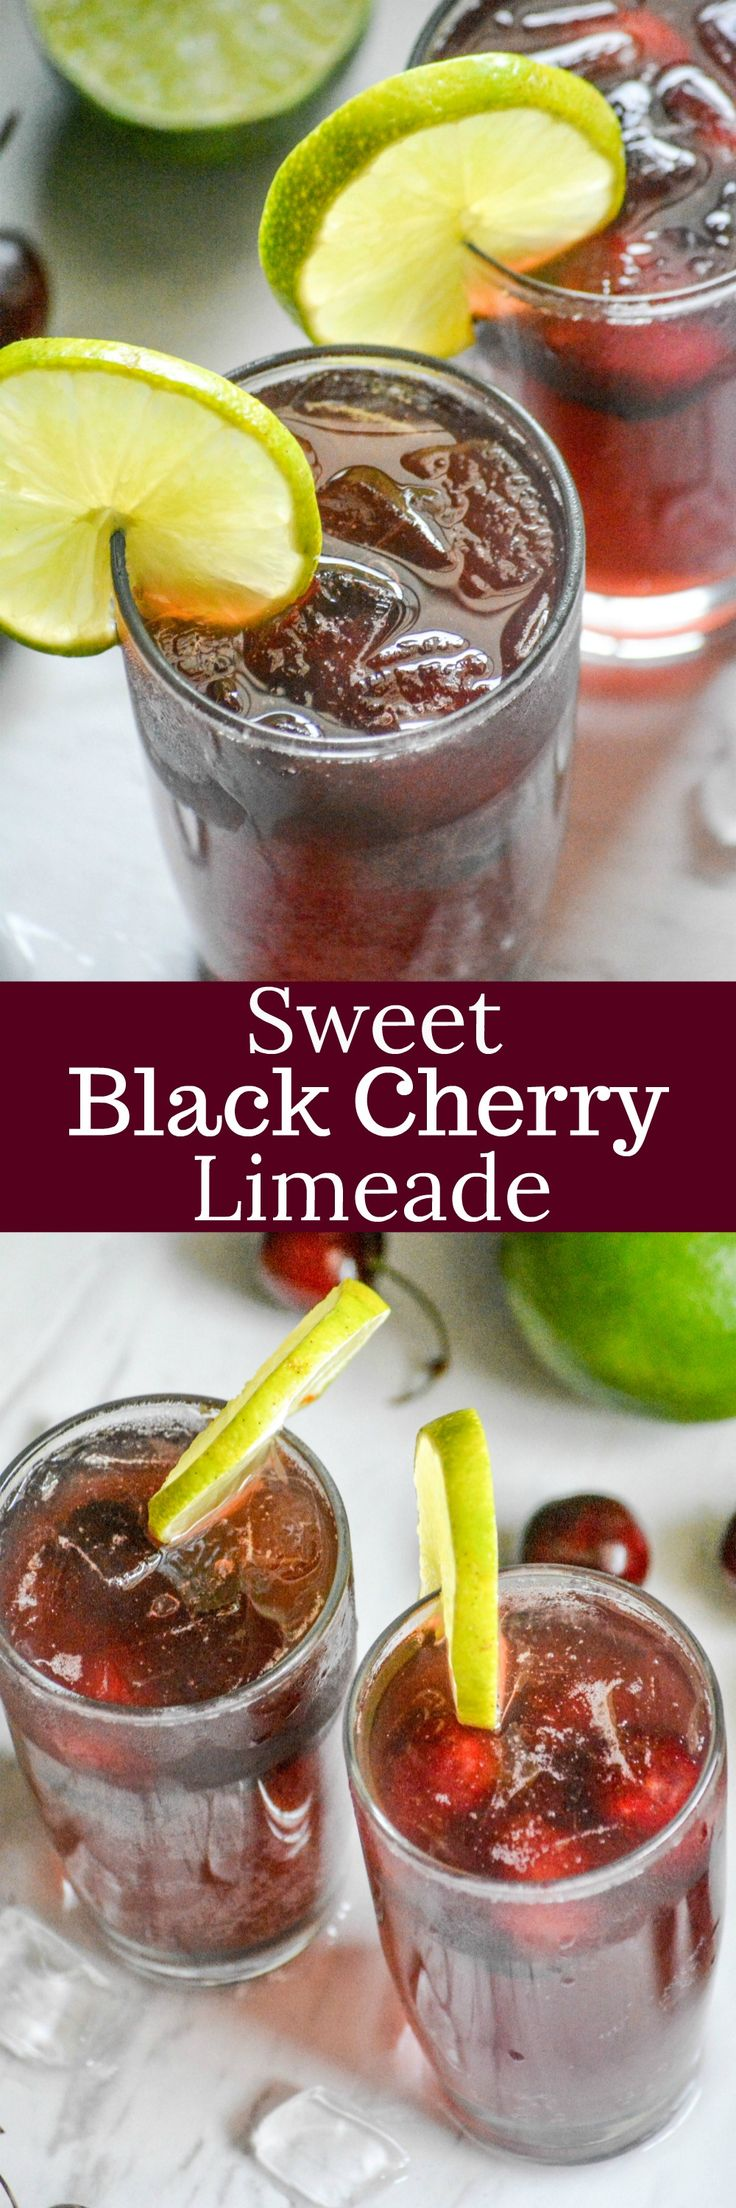 Beat the heat with a refreshing drink that was made for Summer sippin'. This Sweet Black Cherry Limeade is fizzy fun with the perfect blend of sweet cherries with a hint of lime.